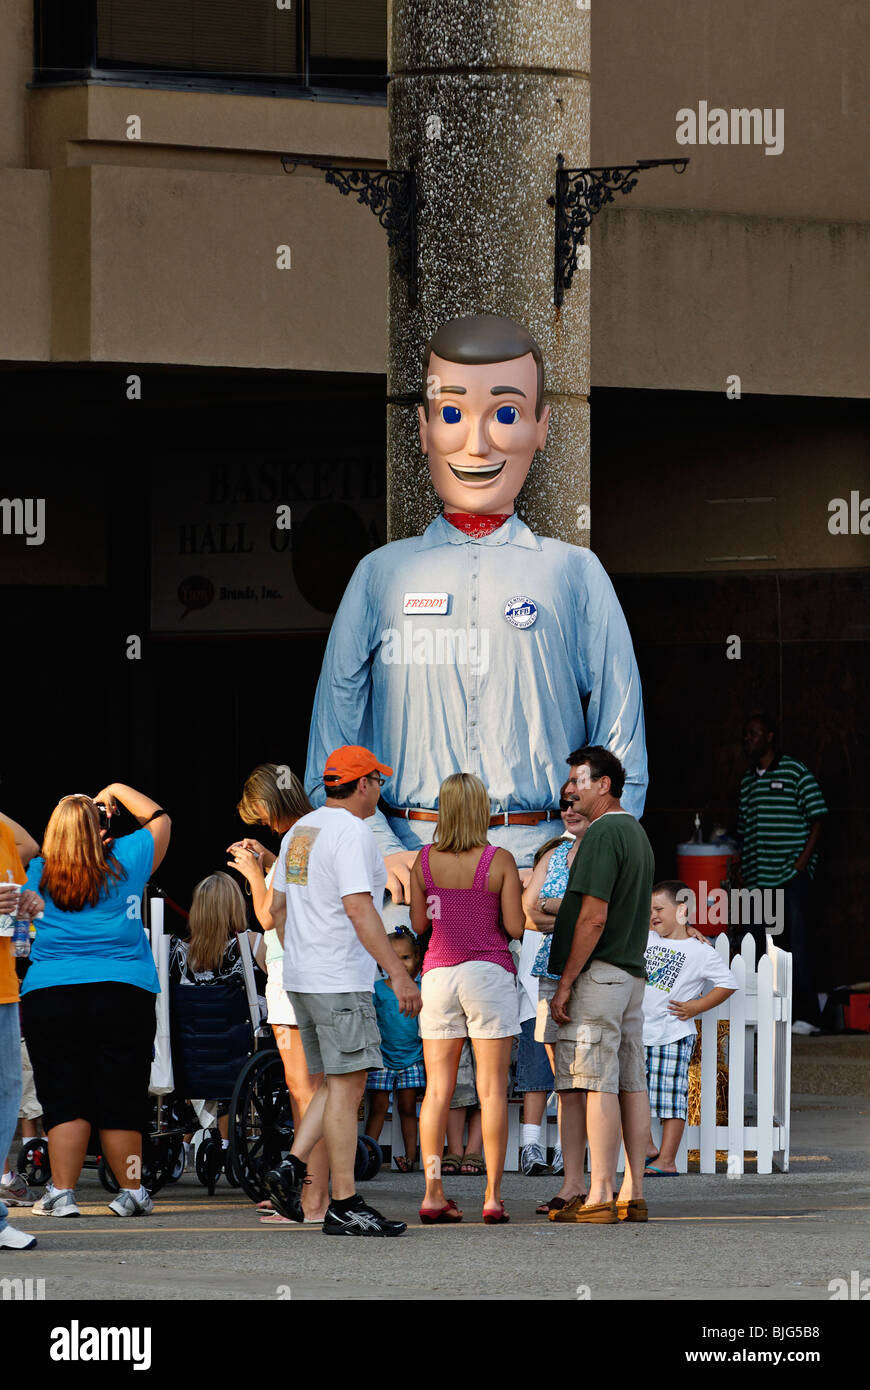 Freddy Farm Bureau and Crowd at the 2009 Kentucky State Fair in Louisville, Kentucky - Stock Image